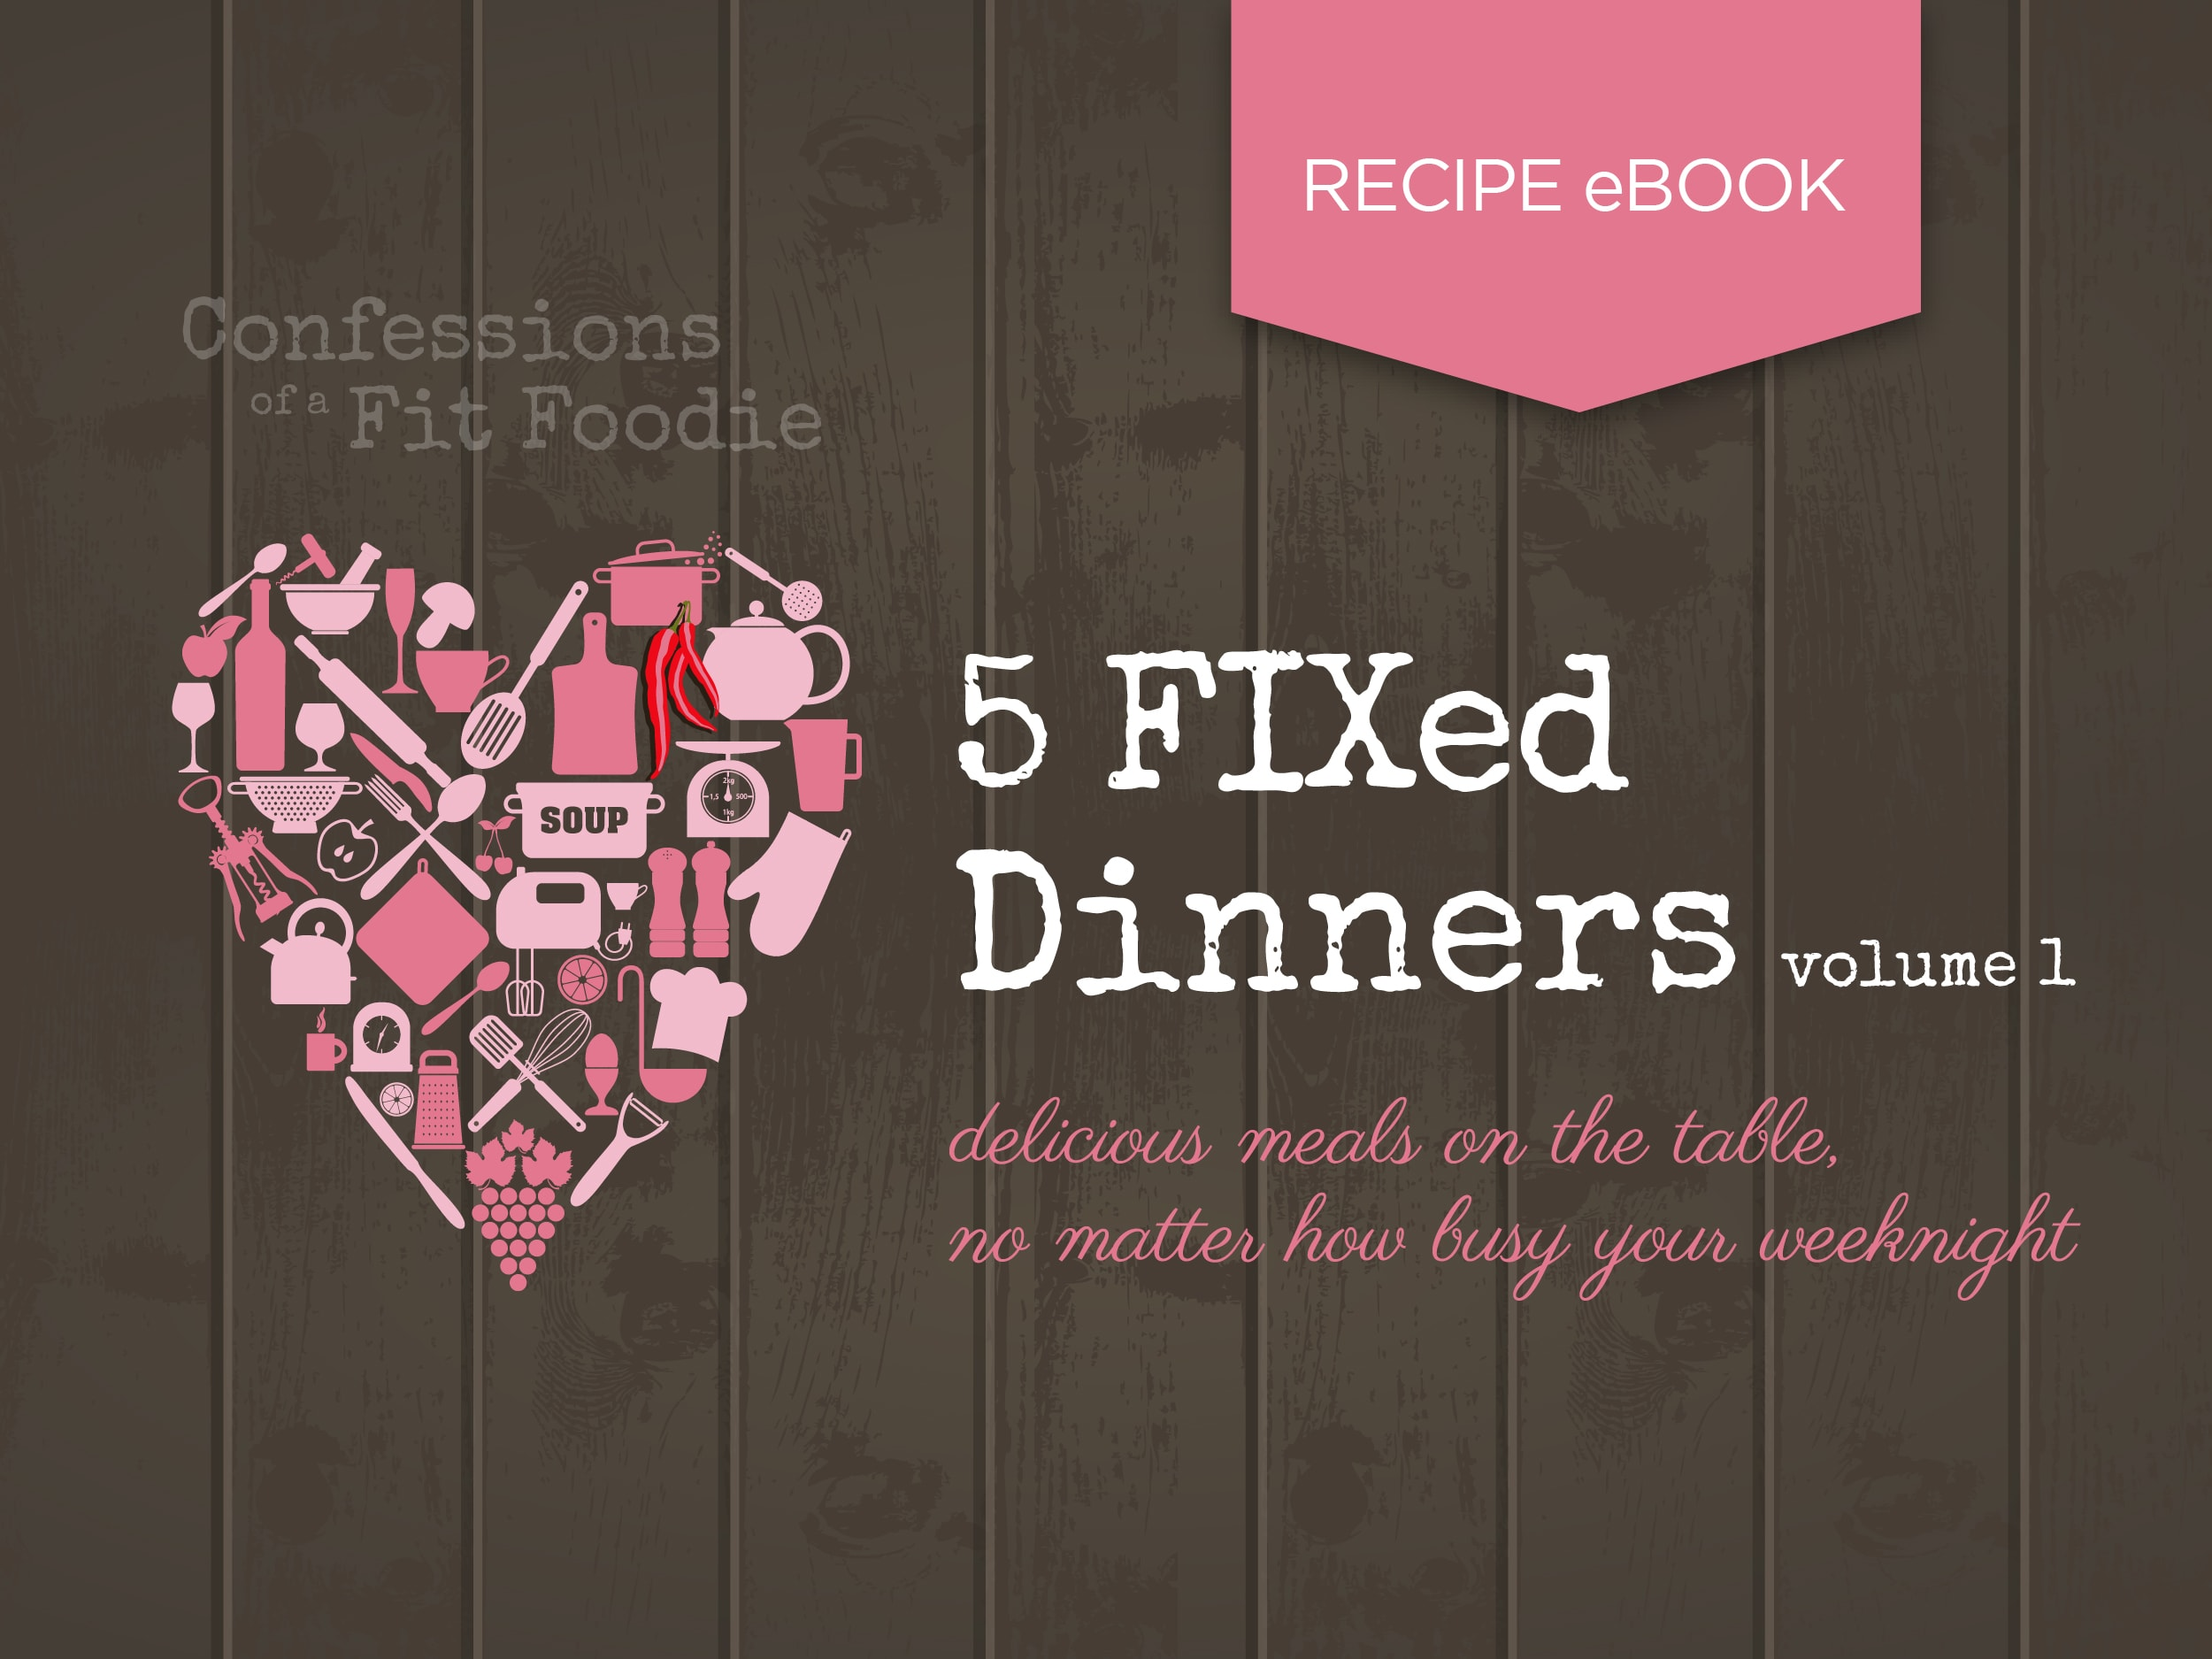 Confessions_5FIXedDinners_vol1_Promo-01 (1)